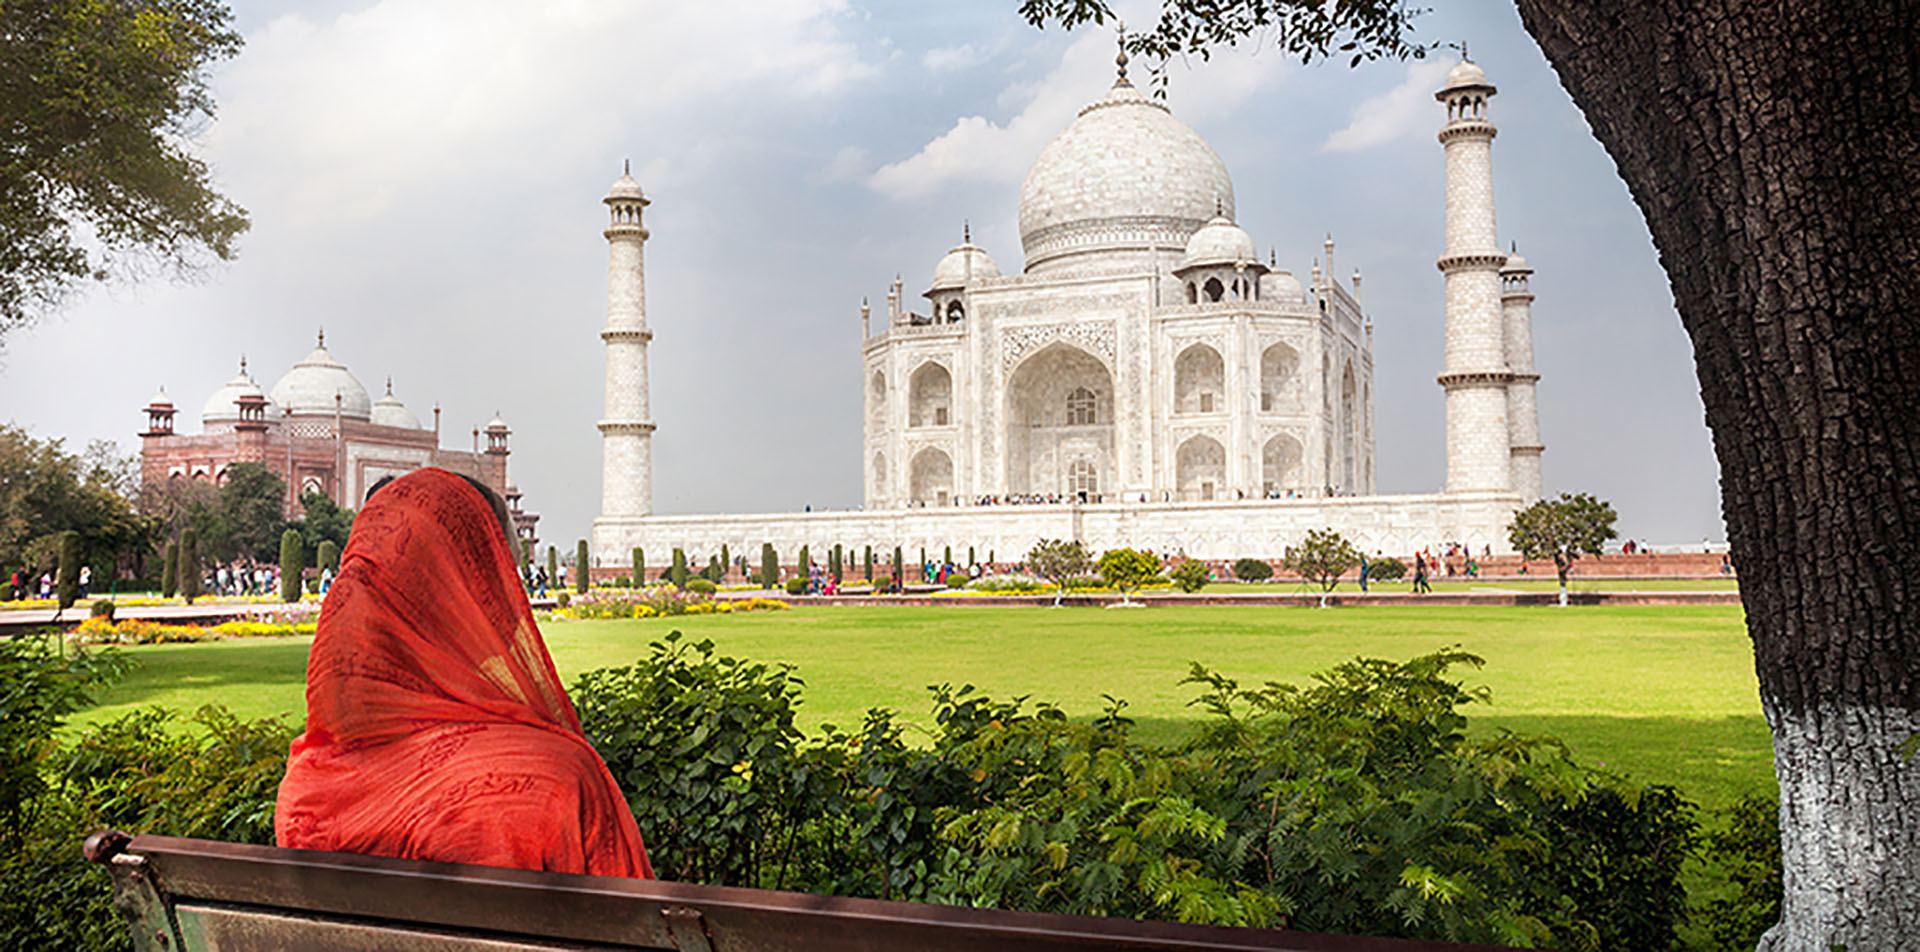 Taj Mahal Heritage Travel